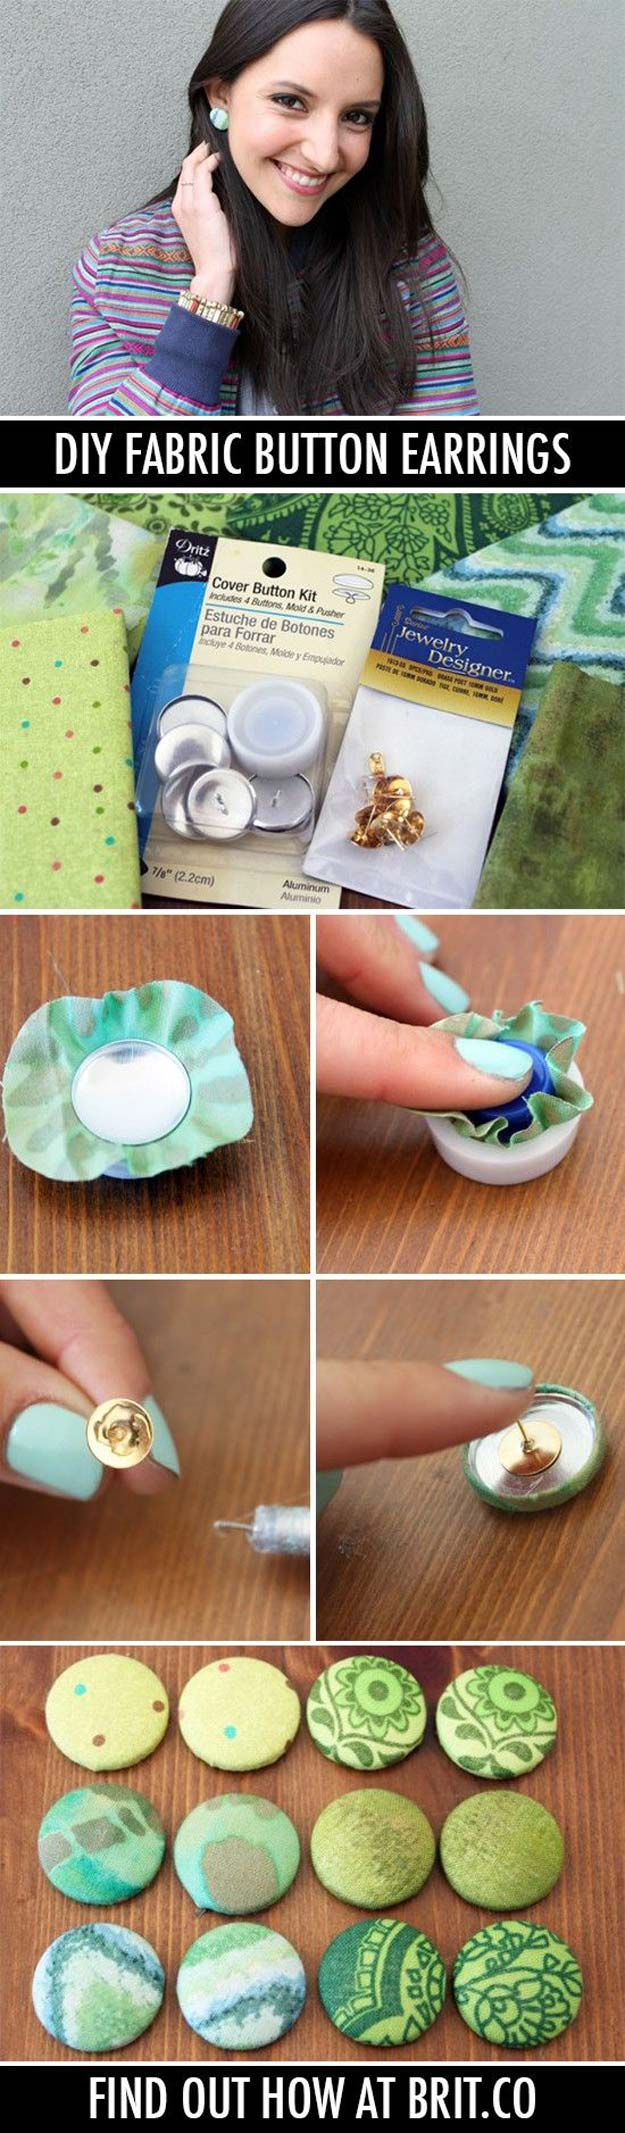 DIY Earrings and Homemade Jewelry Projects - Fabric Button Earrings - Easy Studs, Ideas with Beads, Dangle Earring Tutorials, Wire, Feather, Simple Boho, Handmade Earring Cuff, Hoops and Cute Ideas for Teens and Adults #diygifts #diyteens #teengifts #teencrafts #diyearrings